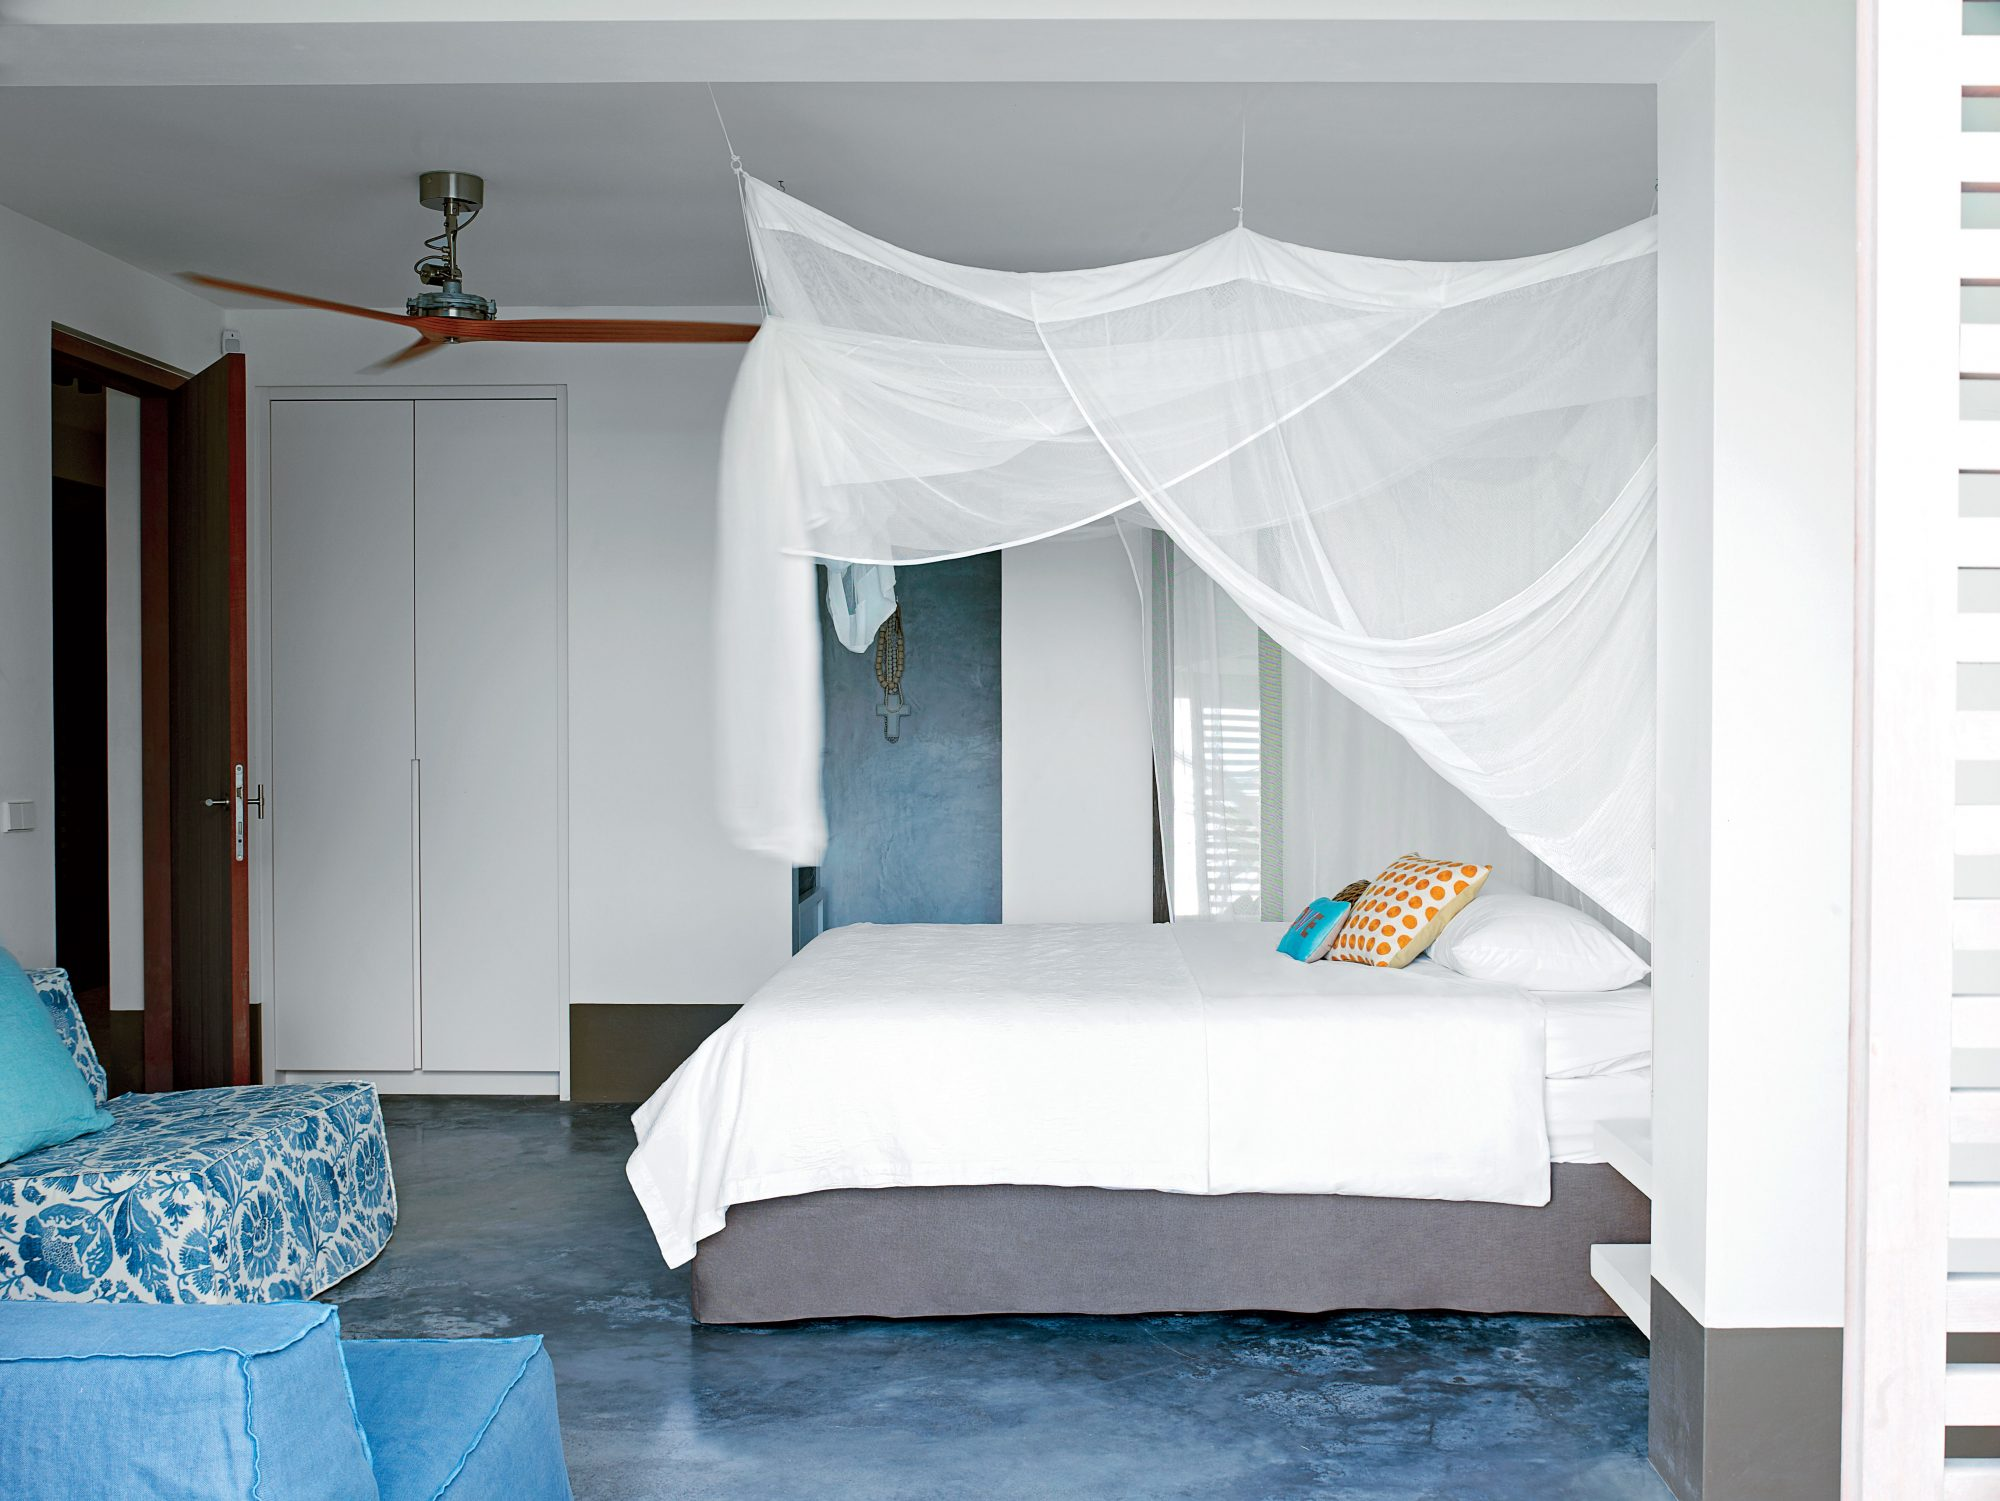 A neutral color palette and uncluttered design make this Bonaire bedroom feel like a peaceful spot for relaxation. The airy canopy lends a touch of island style without detracting from the room's modern aesthetic.